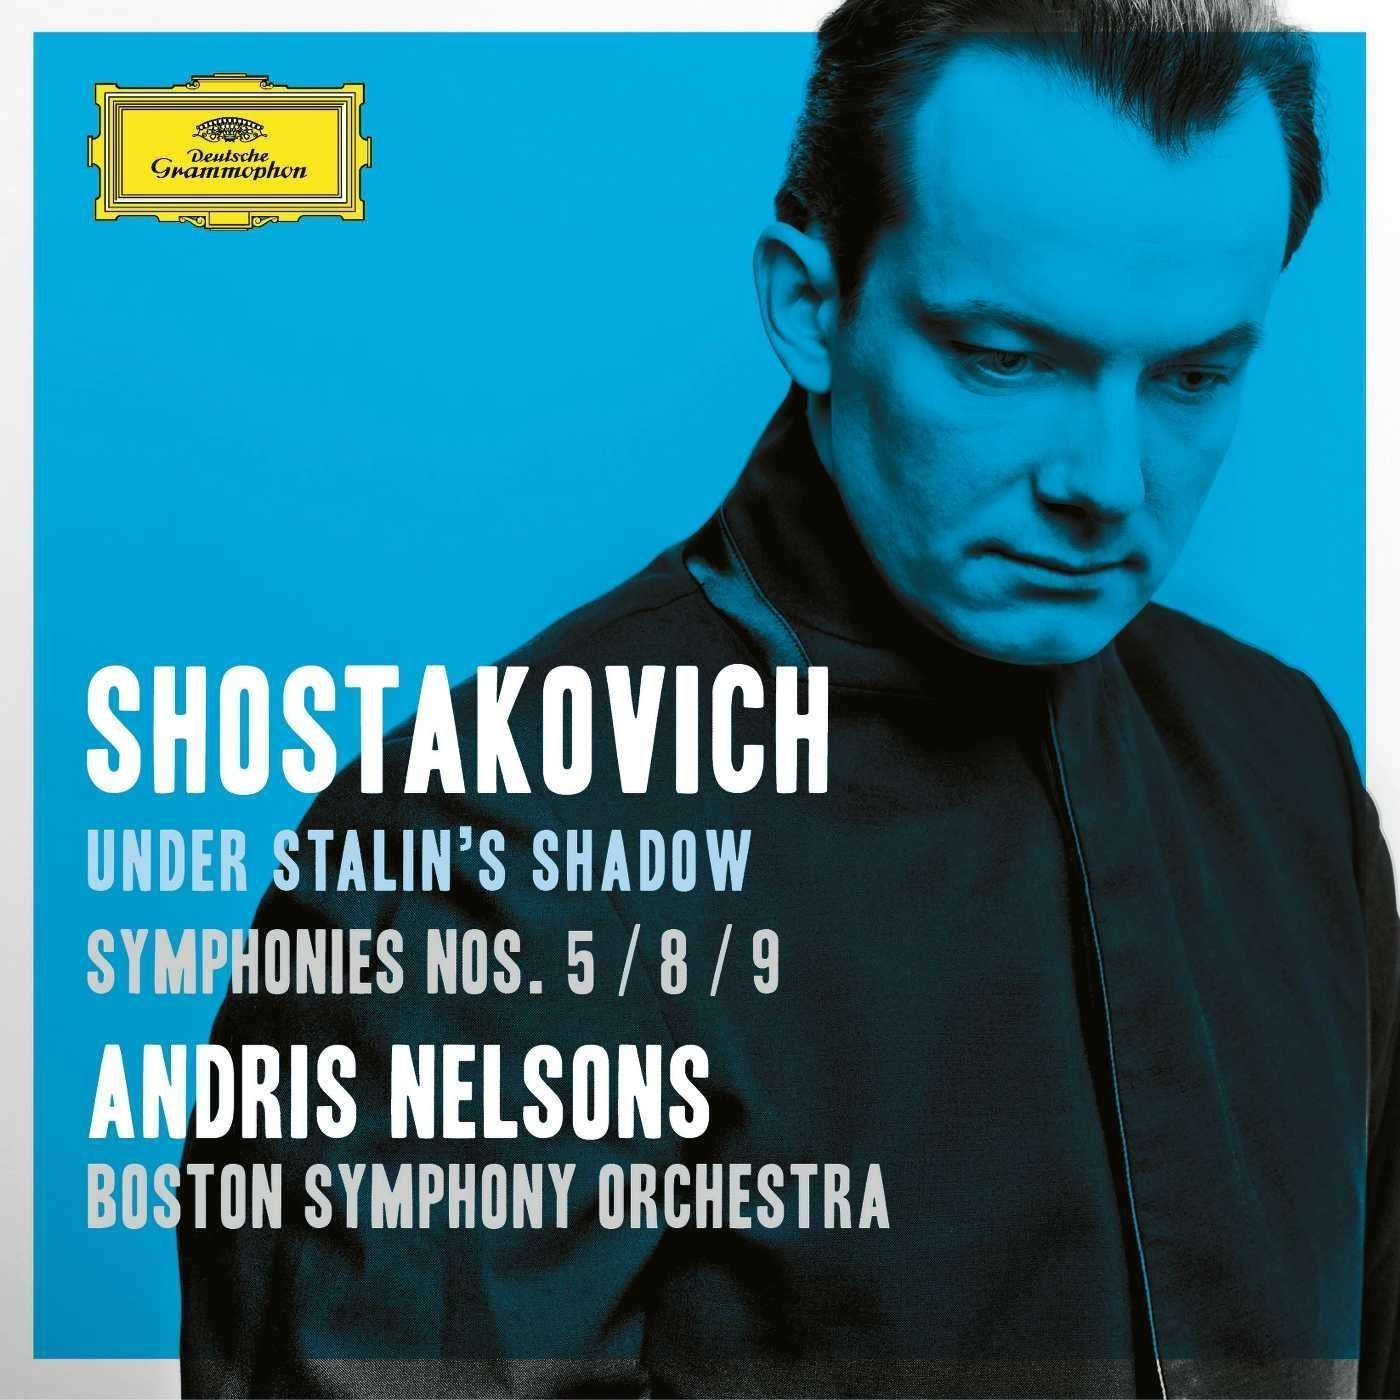 the music salon  wow not only shostakovich but three serious symphonies on deutsche grammophon an entirely respectable conductor and orchestra